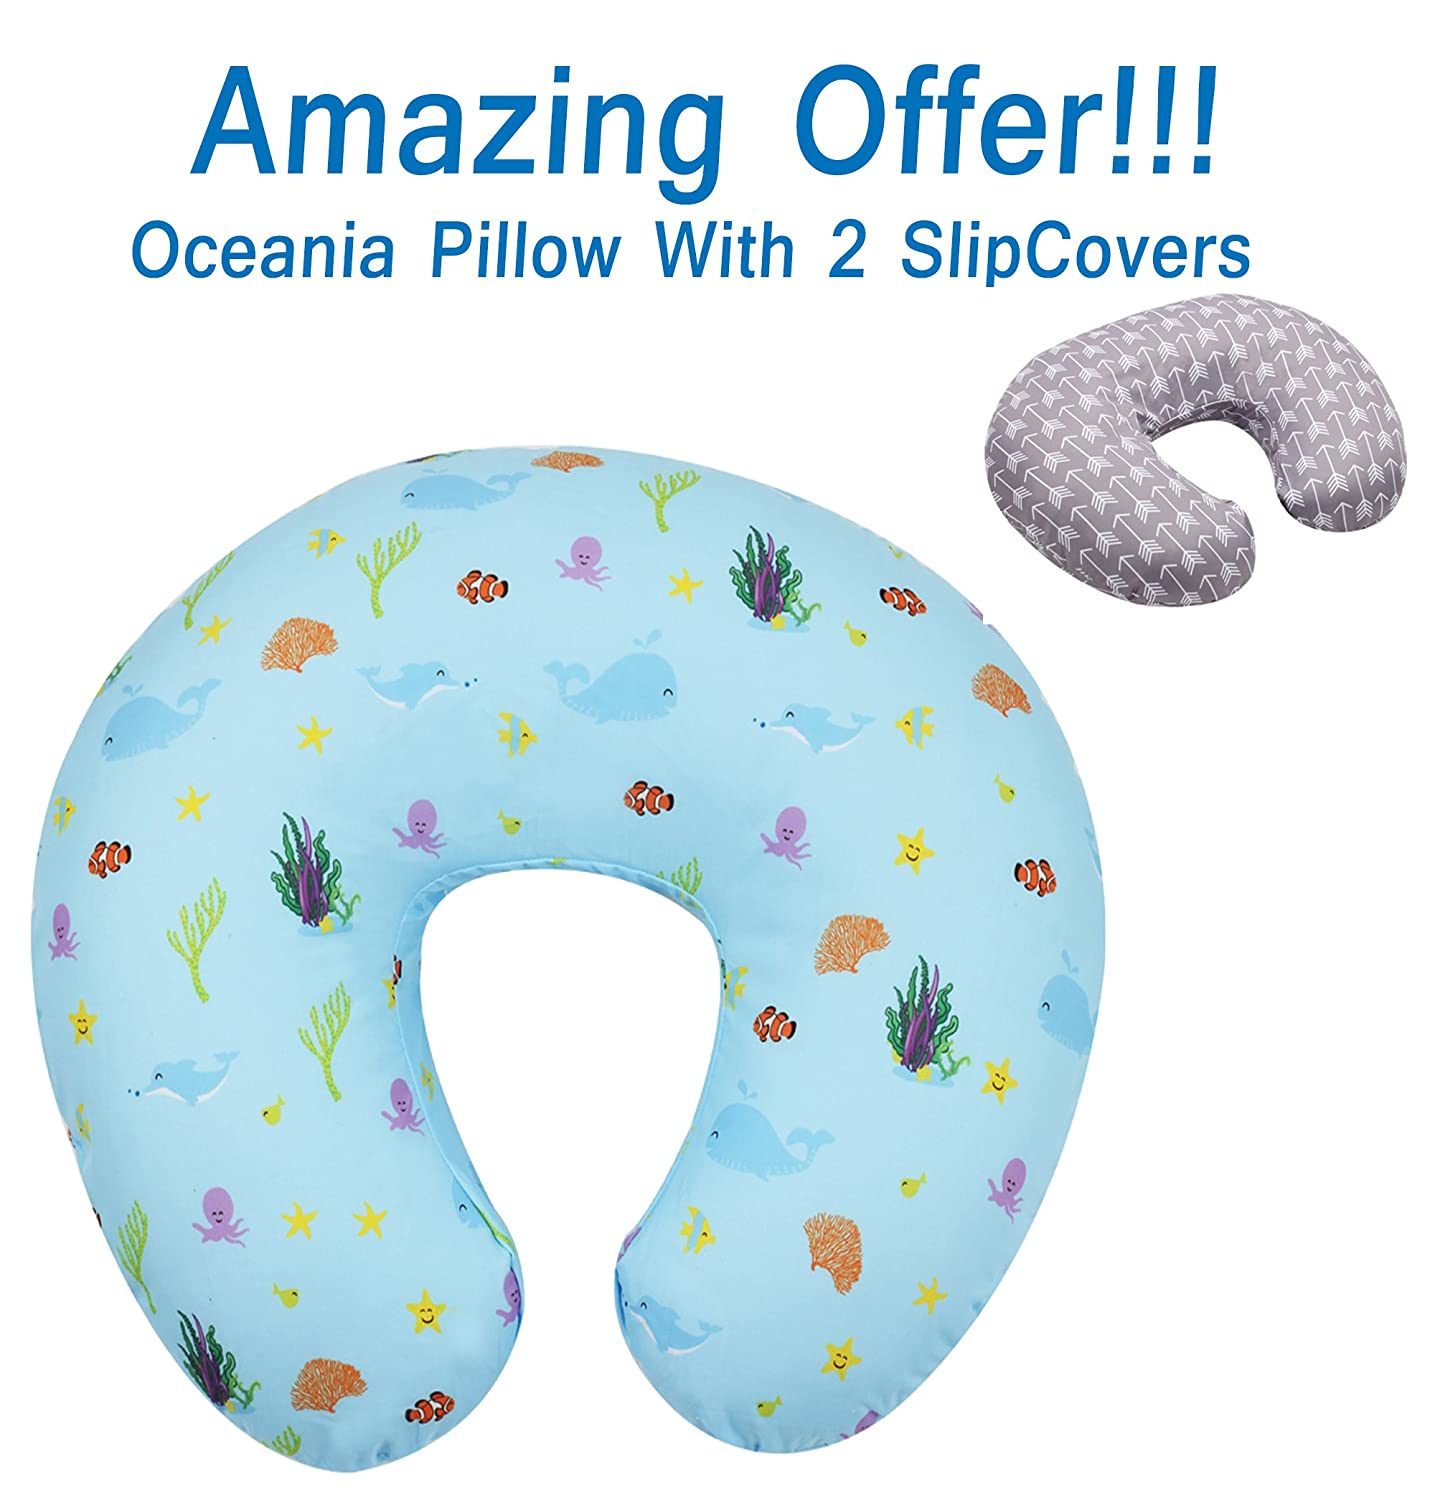 SALE - Dolphin Nursing Pillow and Positioner (With TWO Slipcovers), Positioning & Support For Breastfeeding Moms & Baby. A Perfect Present / Great Baby Shower Gift! MyTickles